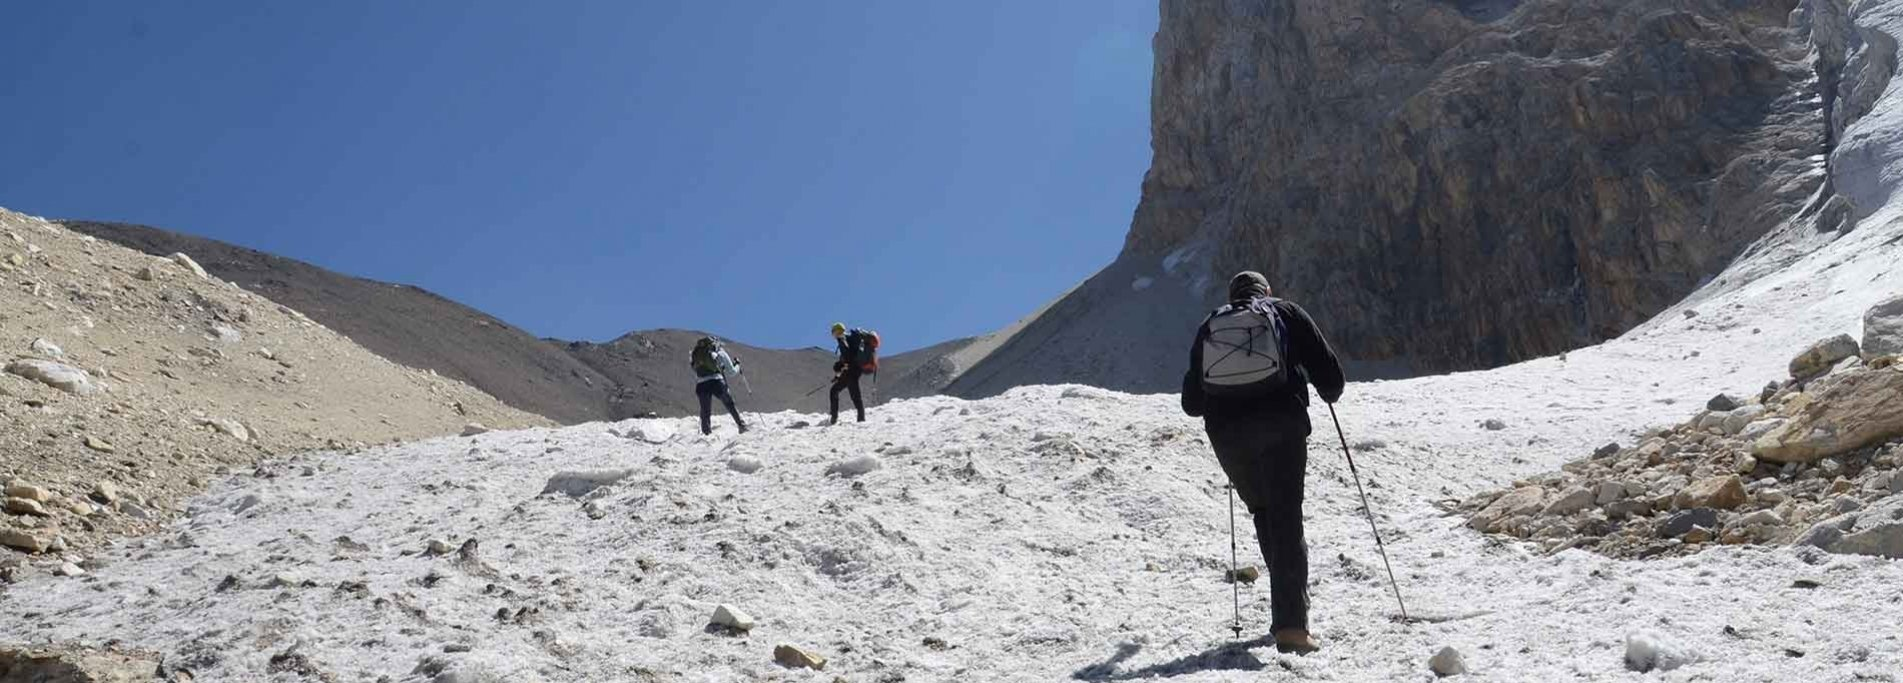 Asian Patagonia - Trekking along the Turkestan ridge